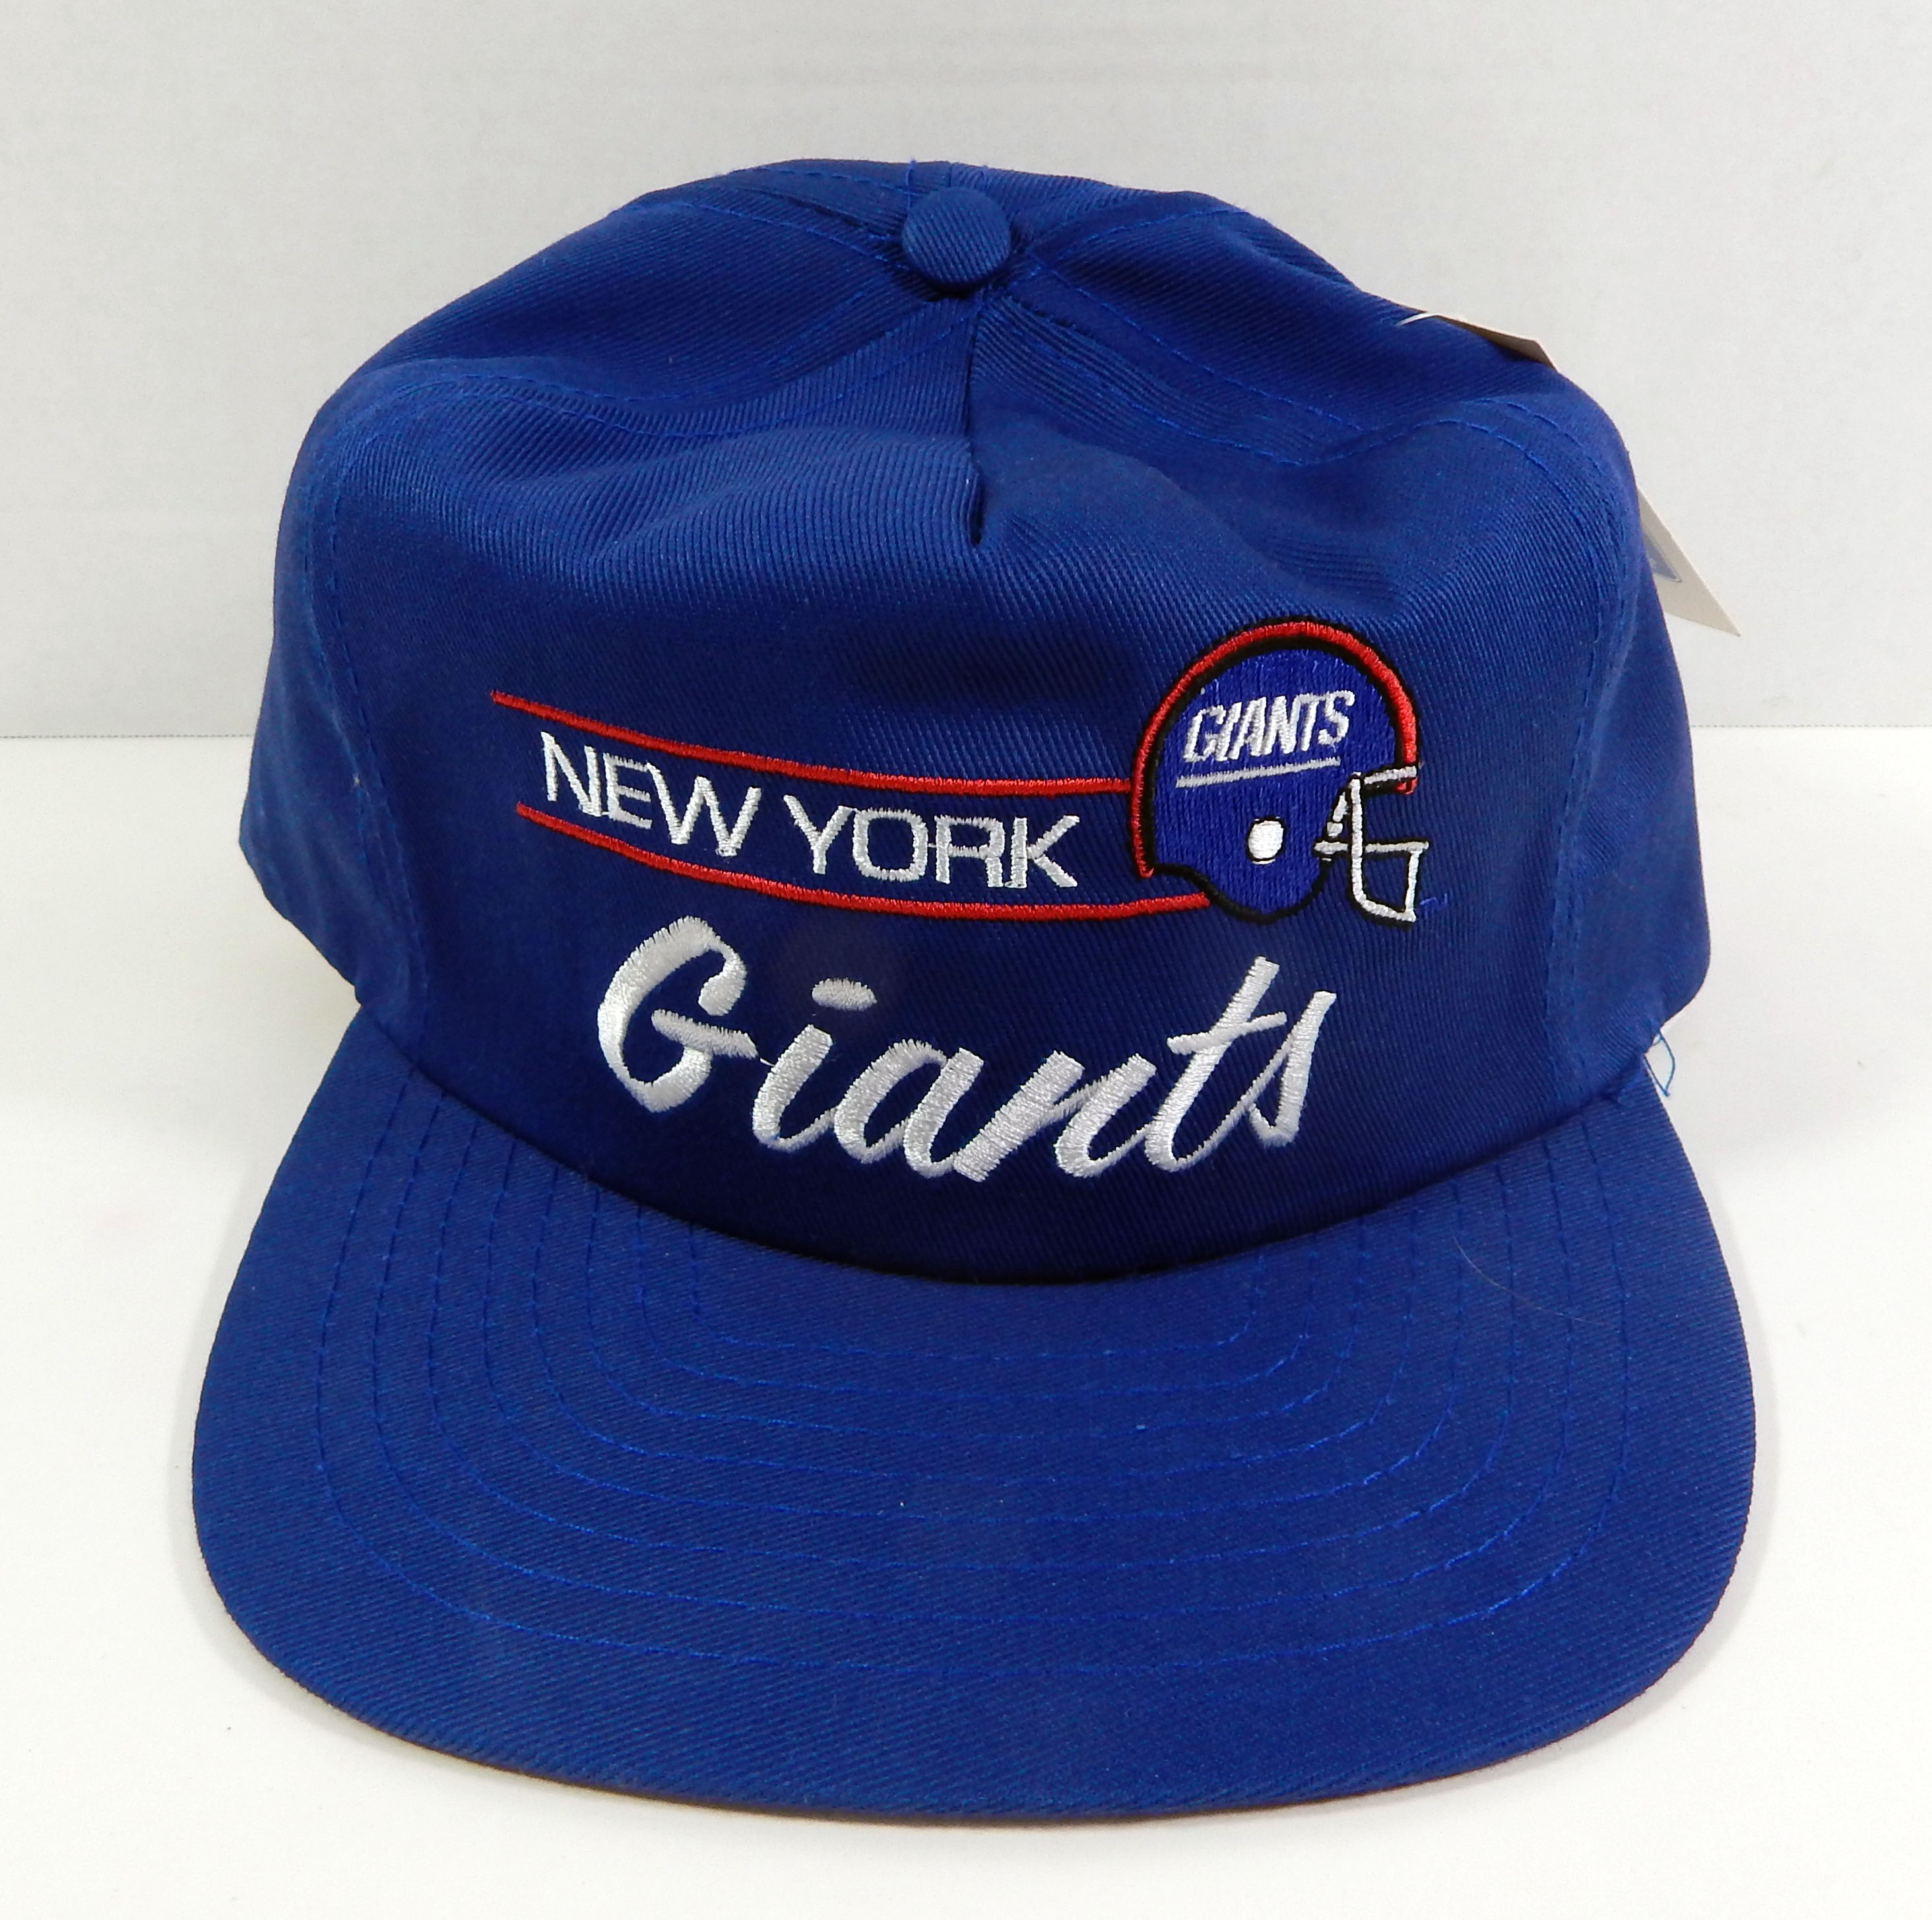 cd5d41279a6913 Details about Vintage New York Giants Blue Script Snapback Hat Annco NWT